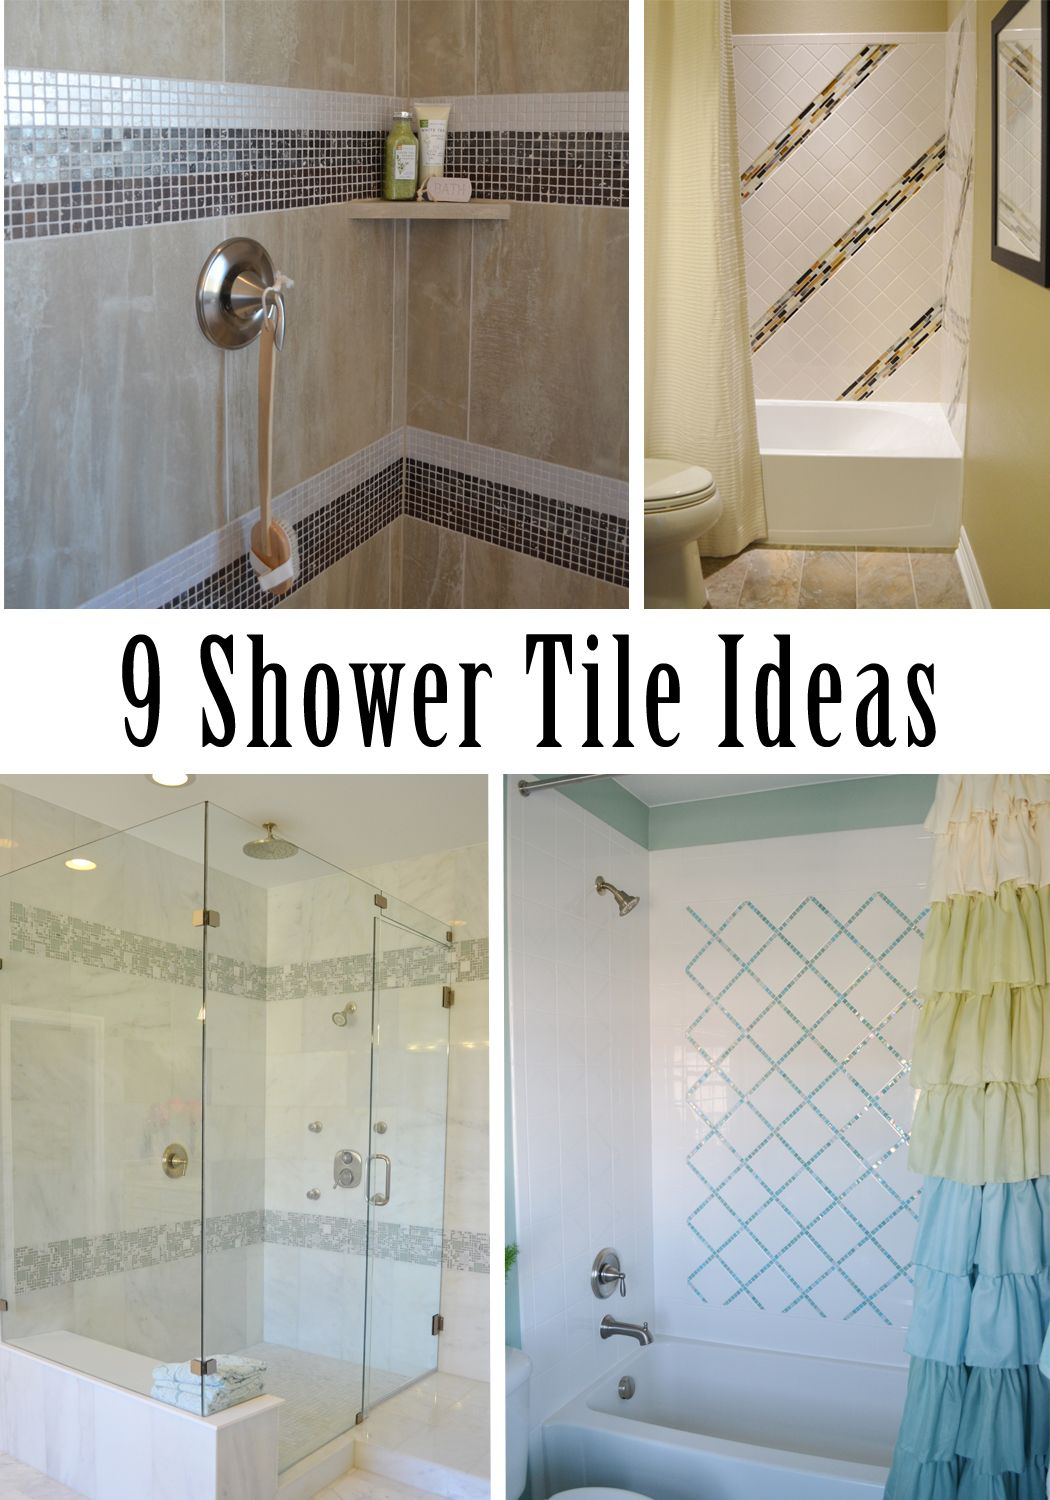 9 Shower Tile Ideas | DIY Home Decor | Pinterest | Tile ideas ...